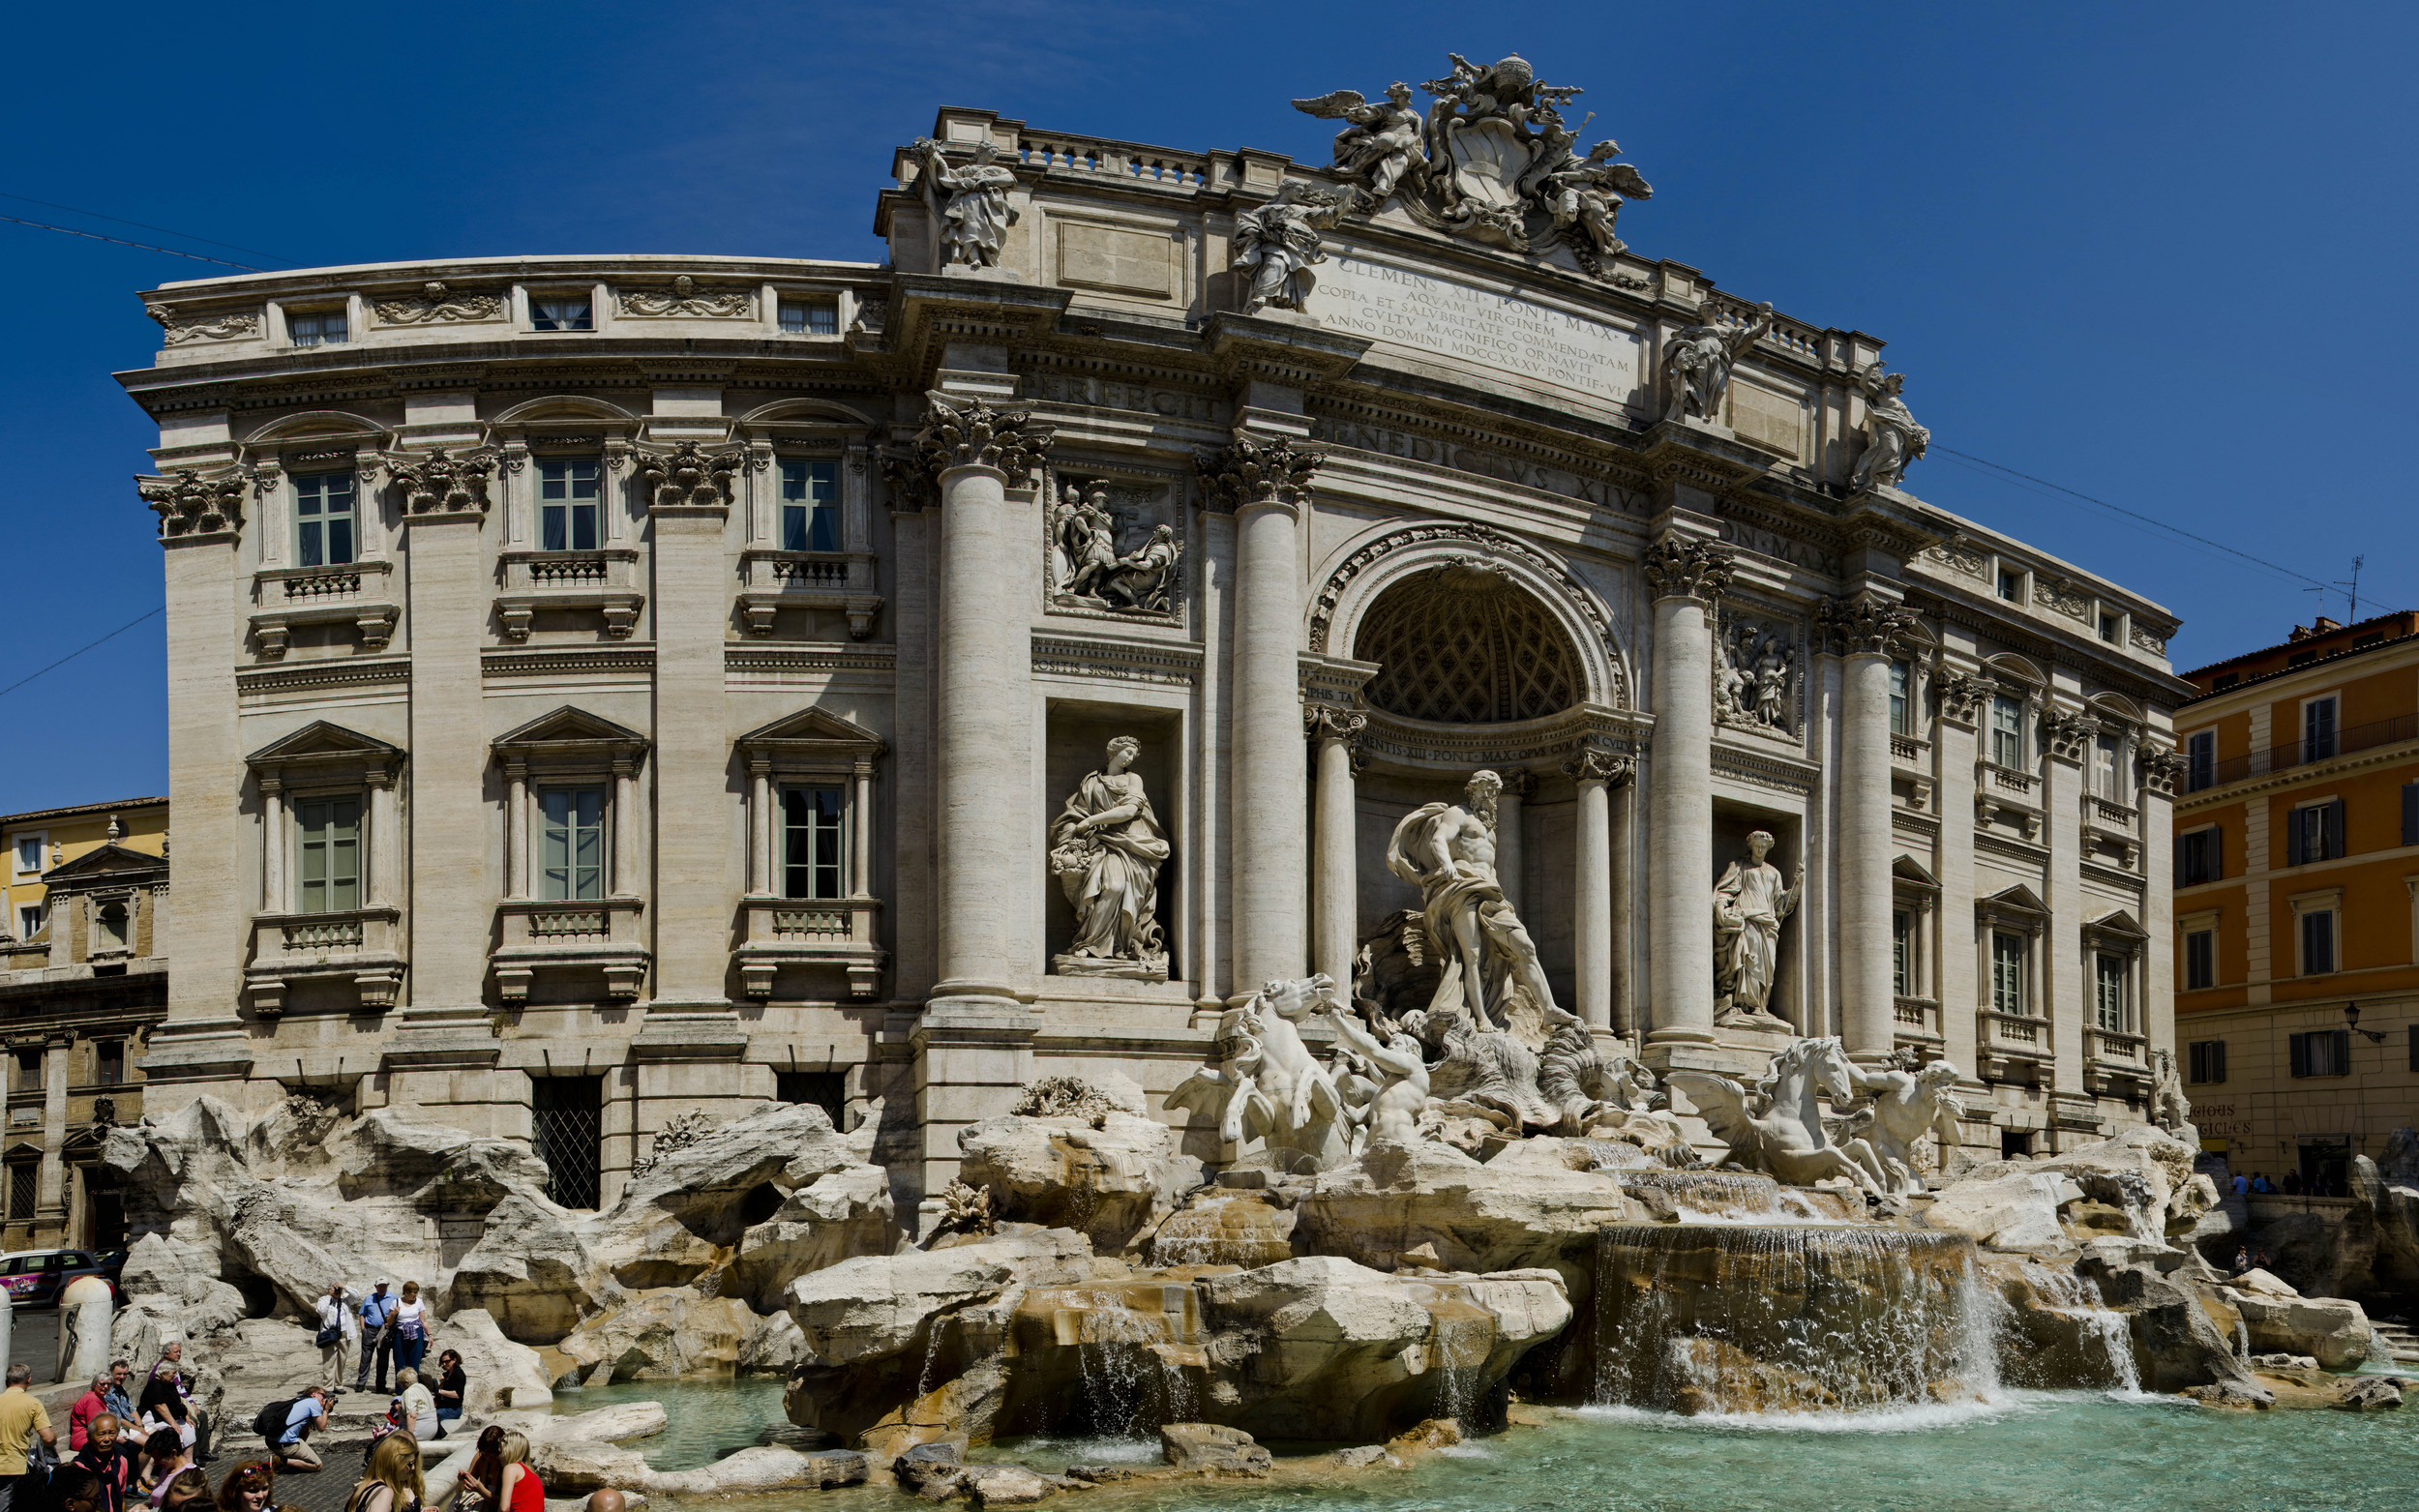 Trevy_Fountain_Panorama1.jpg